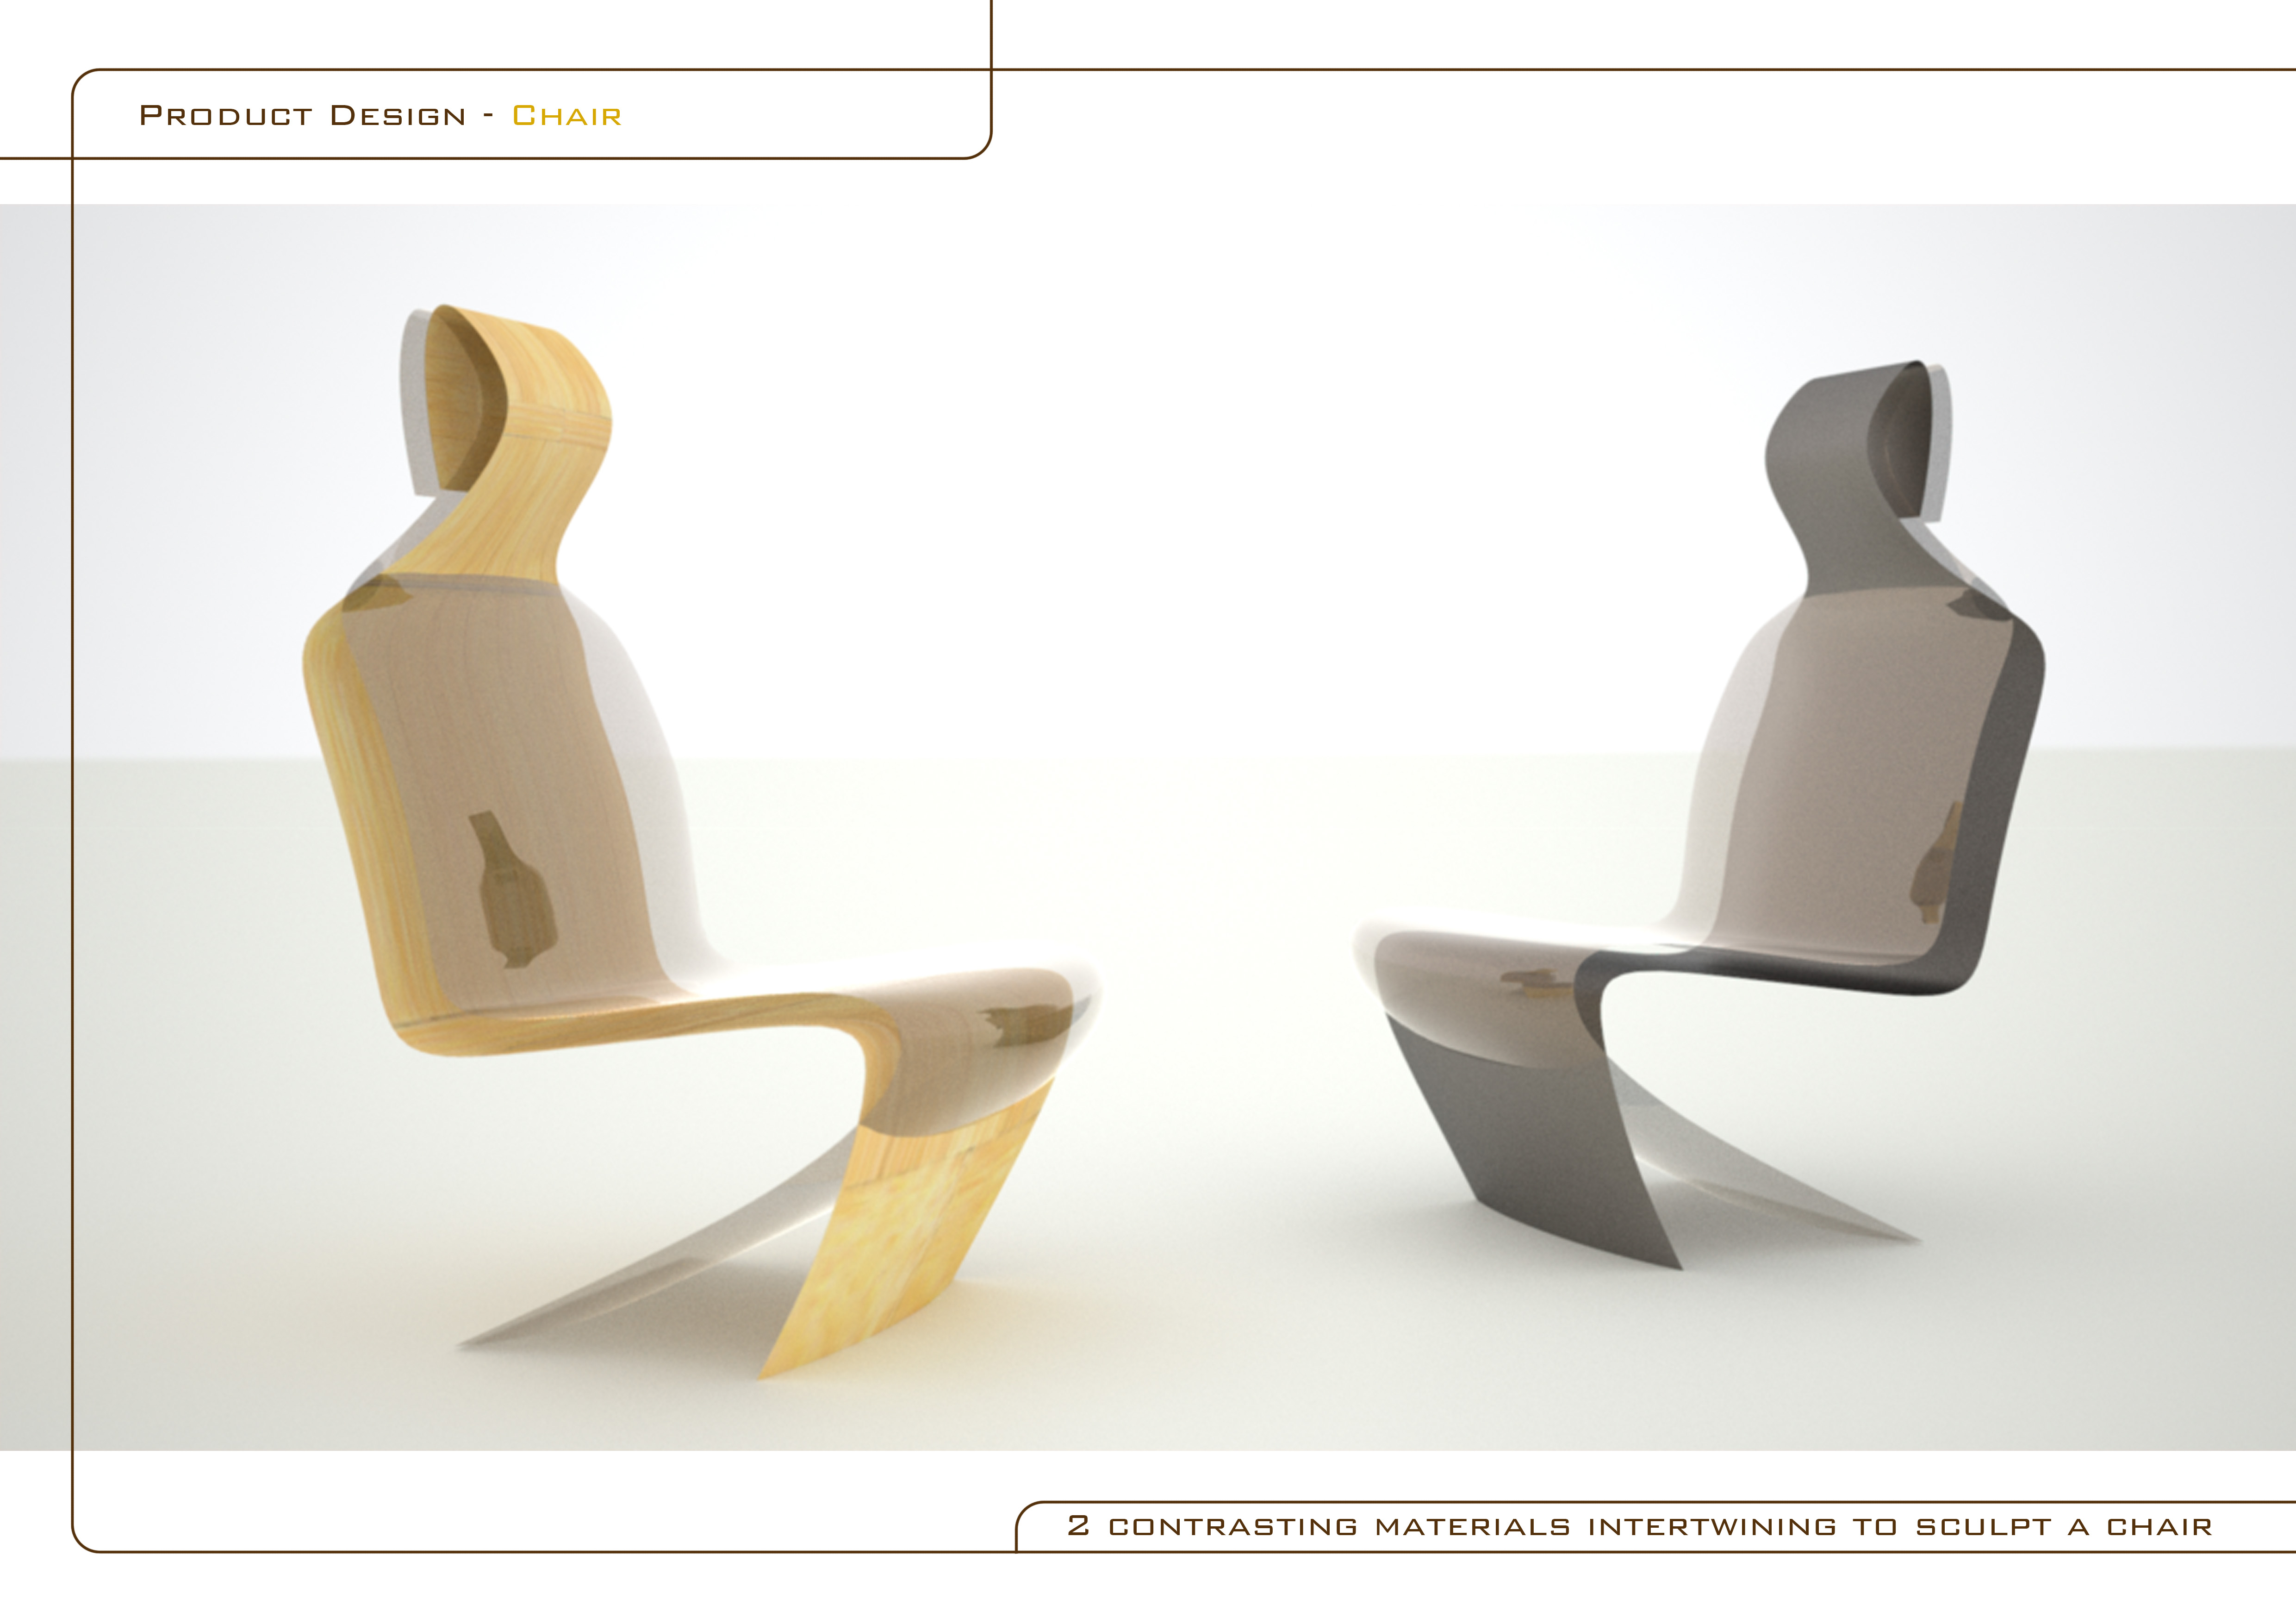 chair design by matt bradbury at coroflotcom - chair design  exploring the relationship between  contrasting pieces ofmaterial intertwining to form a dining room lounge chair